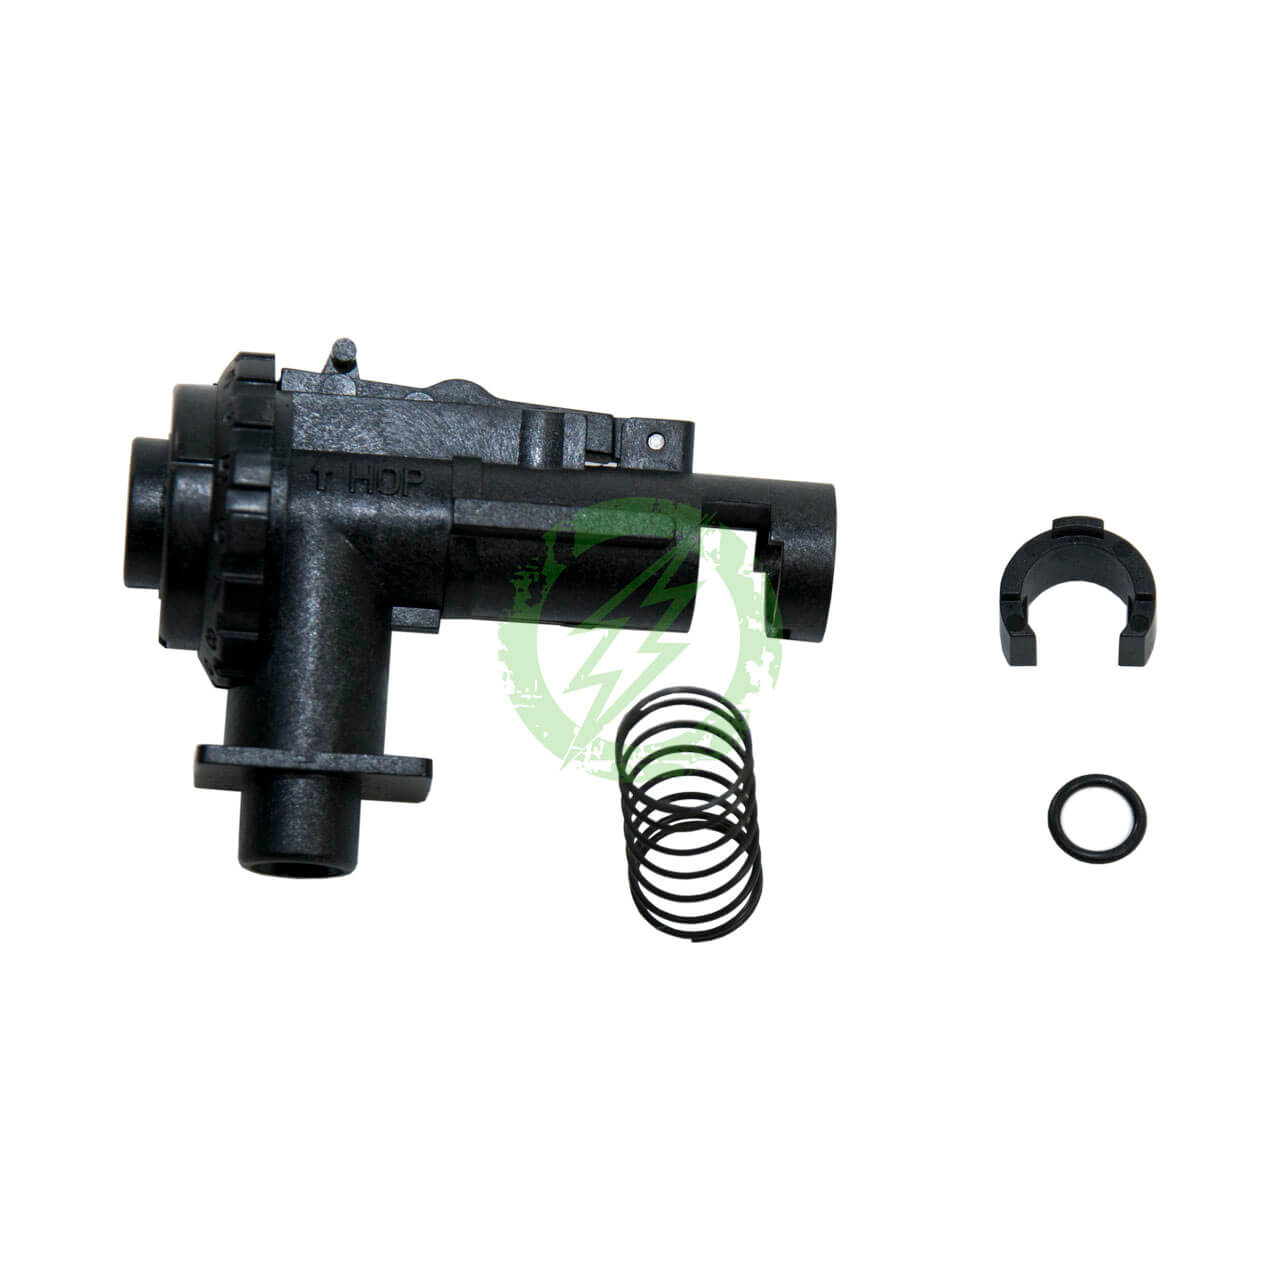 Krytac - M4 / LMG Rotary Hopup Unit for M4/M16 Style AEGs